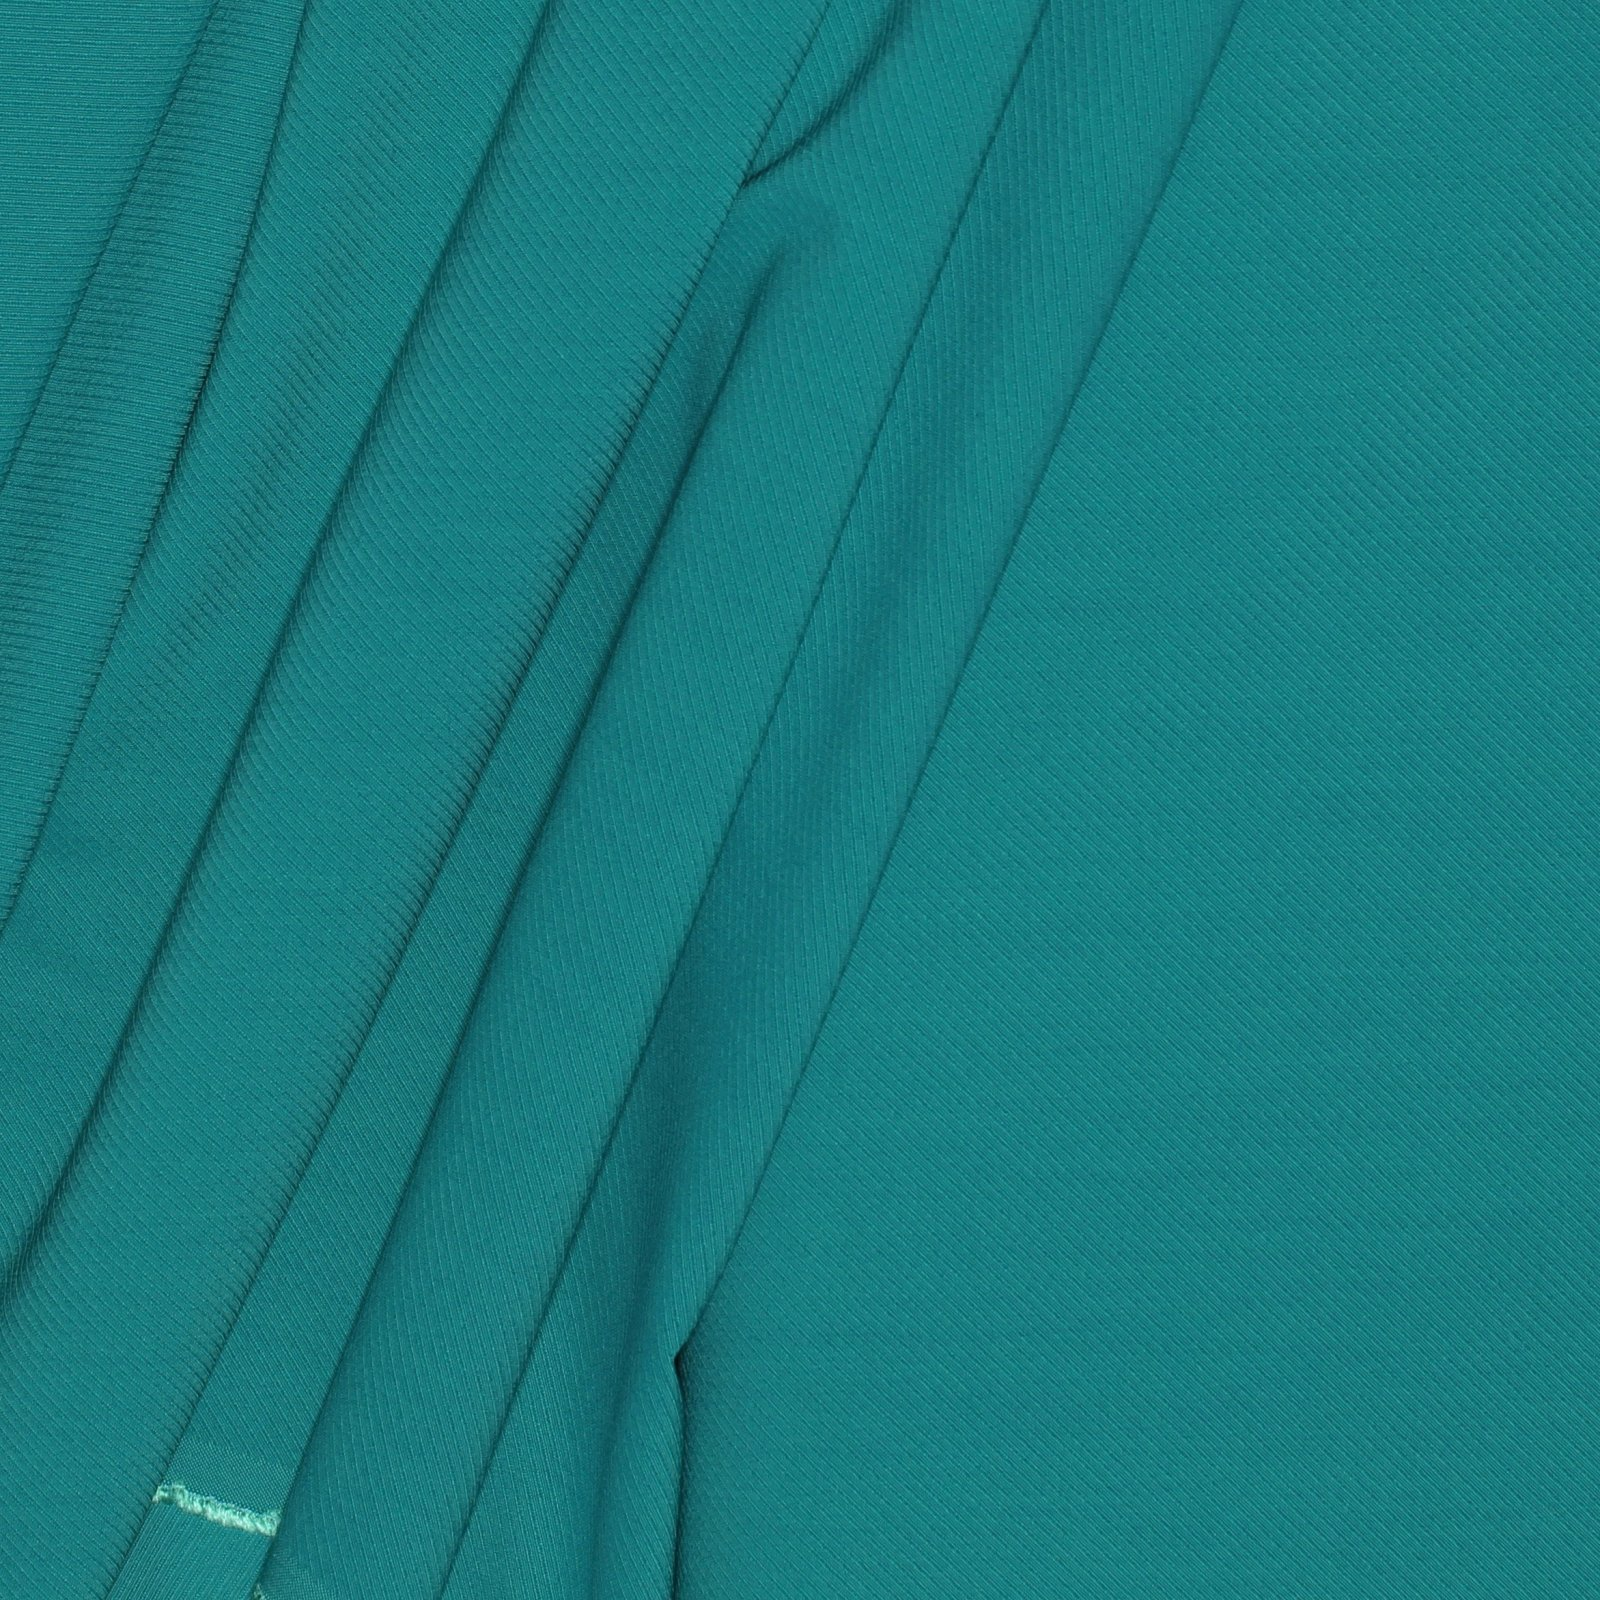 Green/Blue Twill Weave Italian Wool/Silk/Lycra Blend